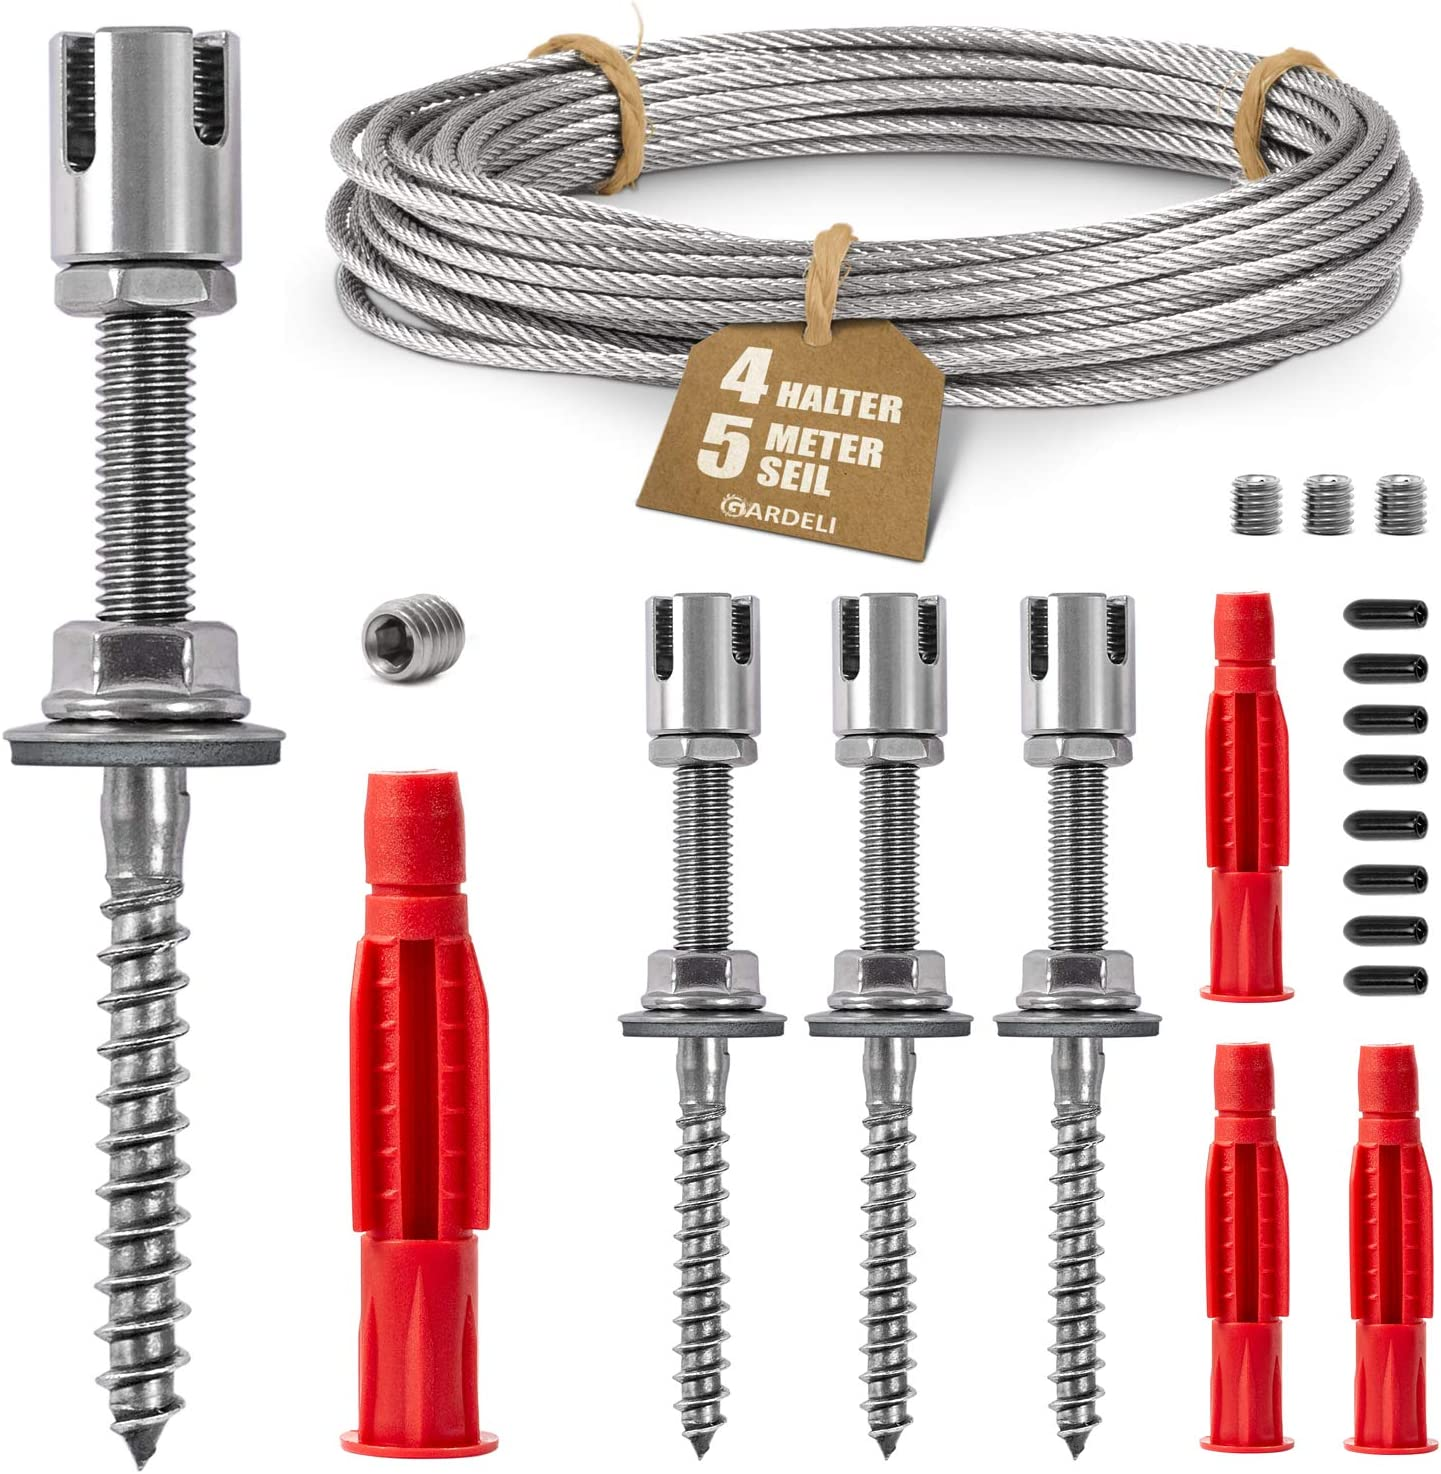 Trellis Set 5-20m Steel Cable Rope Clamp Wire Rope Climbing Aid